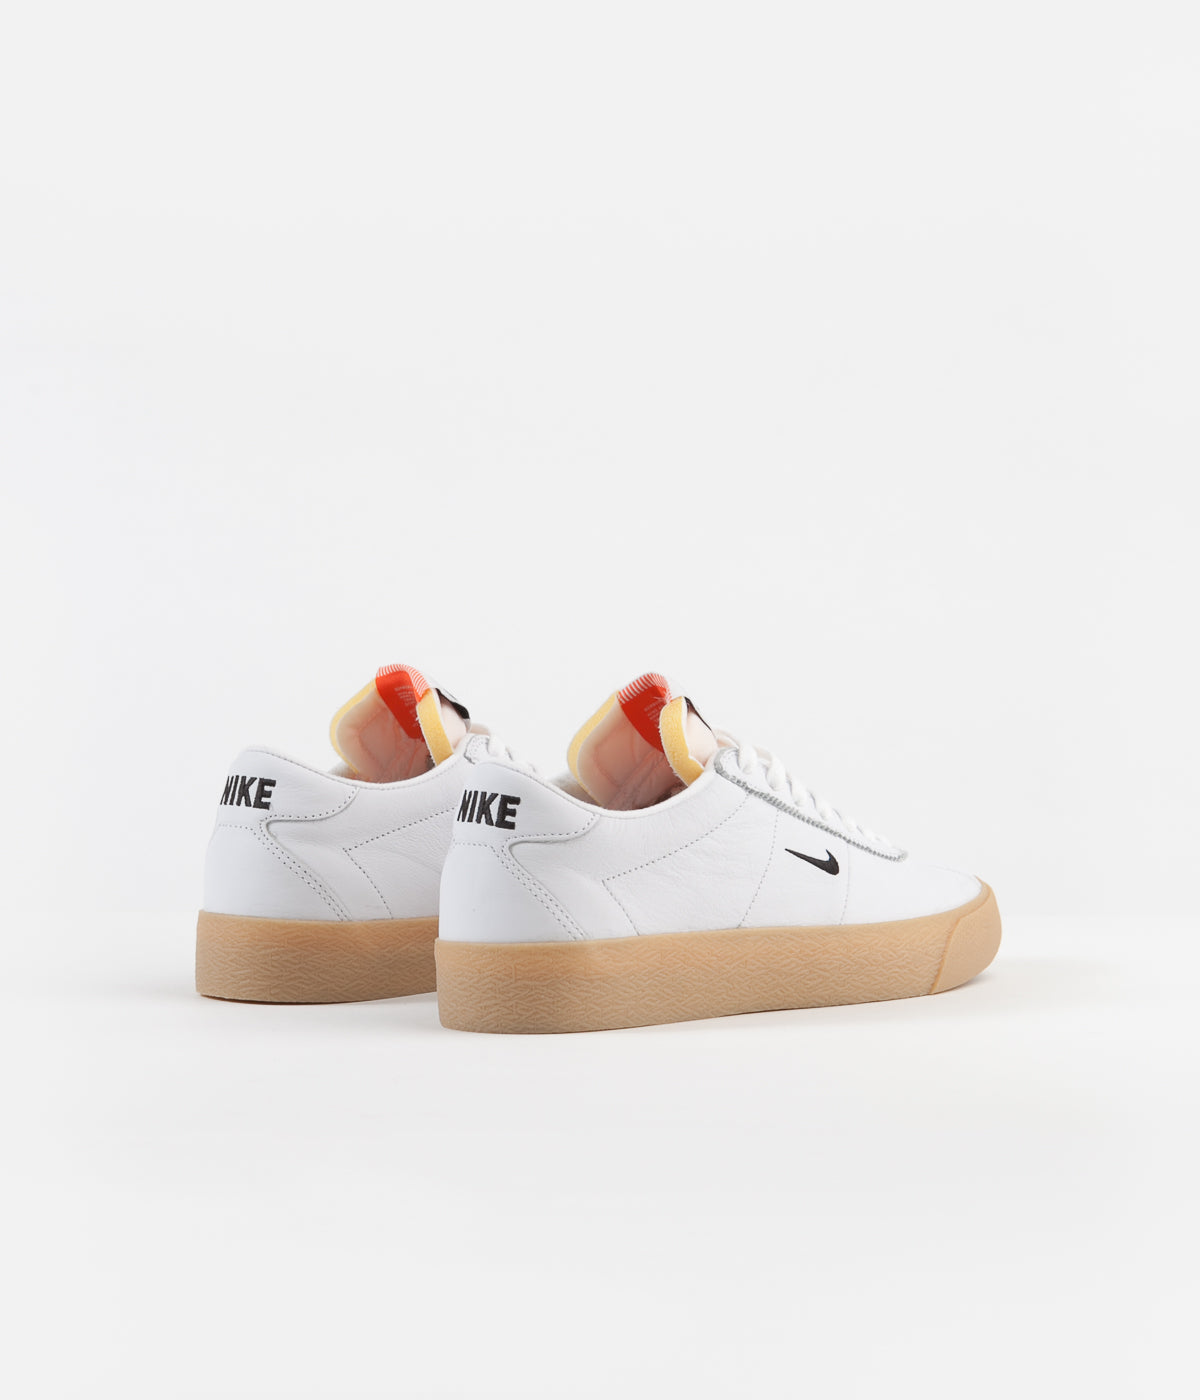 first rate 5d3ea abcc4 ... Nike SB Orange Label Bruin Shoes - White   Black - Safety Orange ...